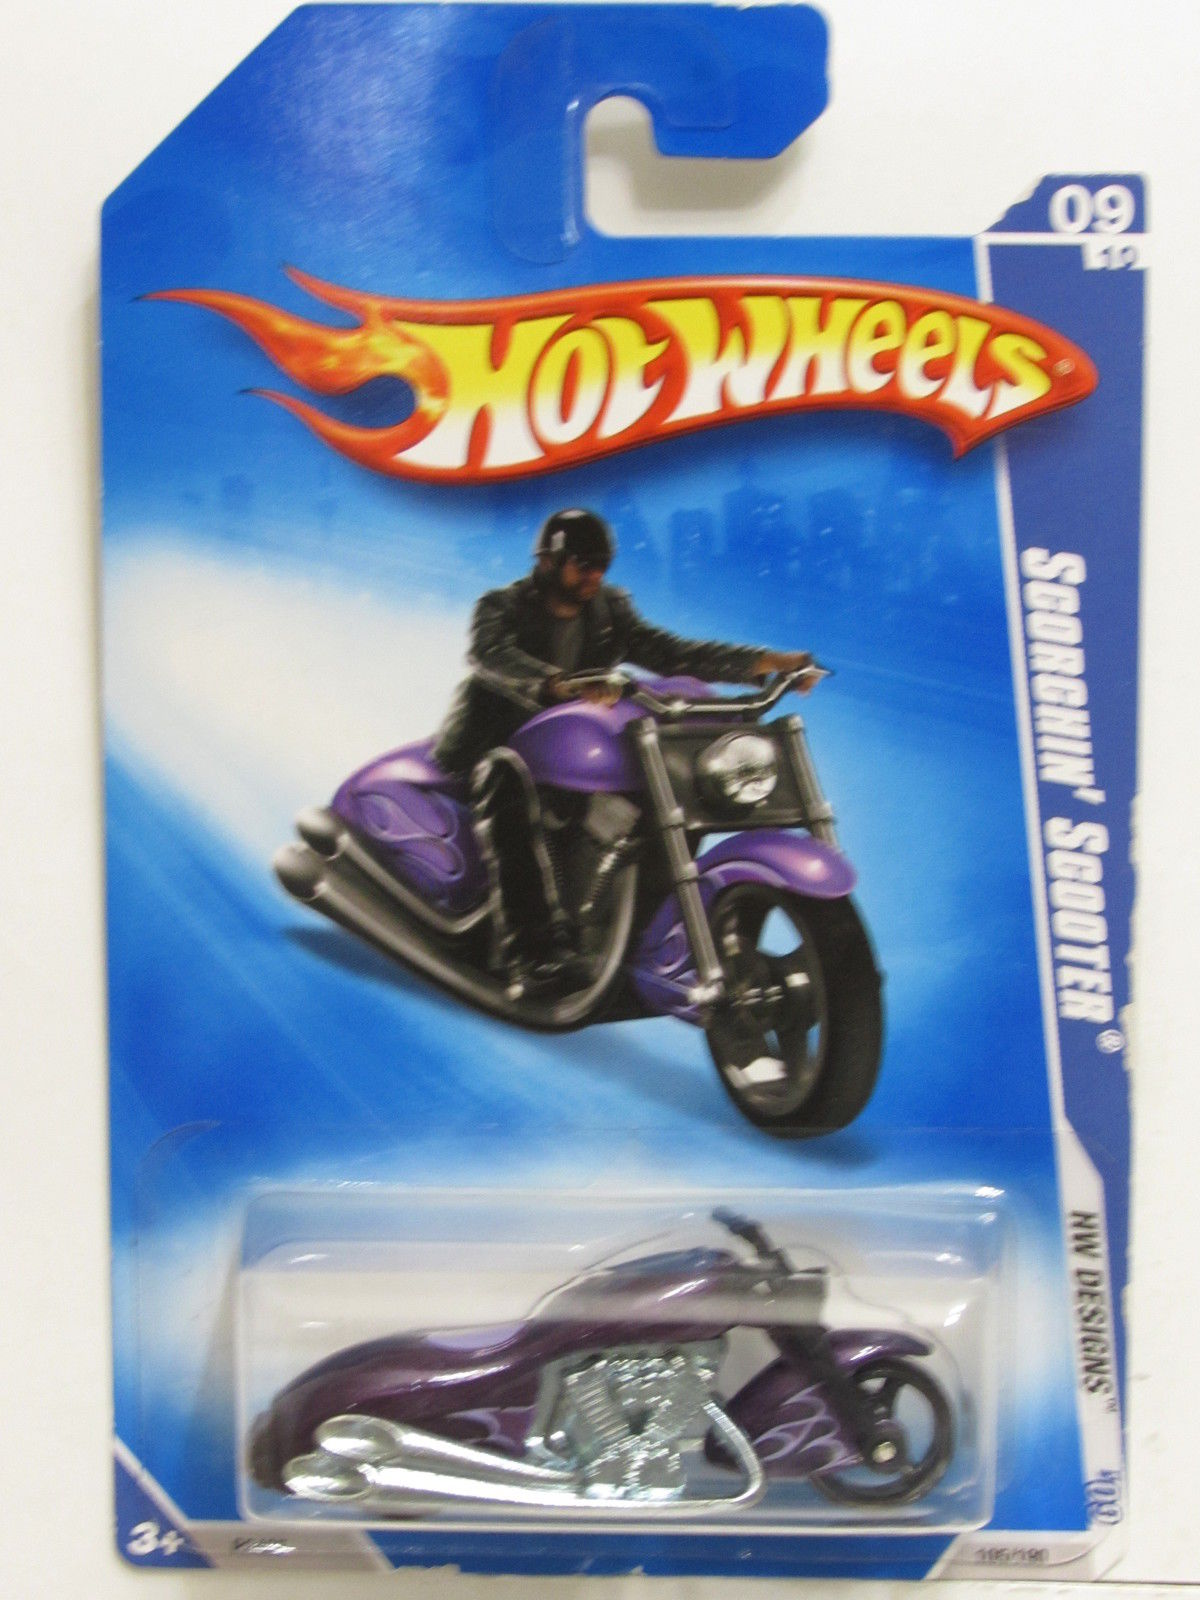 HOT WHEELS 2009 HW DESIGNS SCORCHIN' SCOOTER #09/10